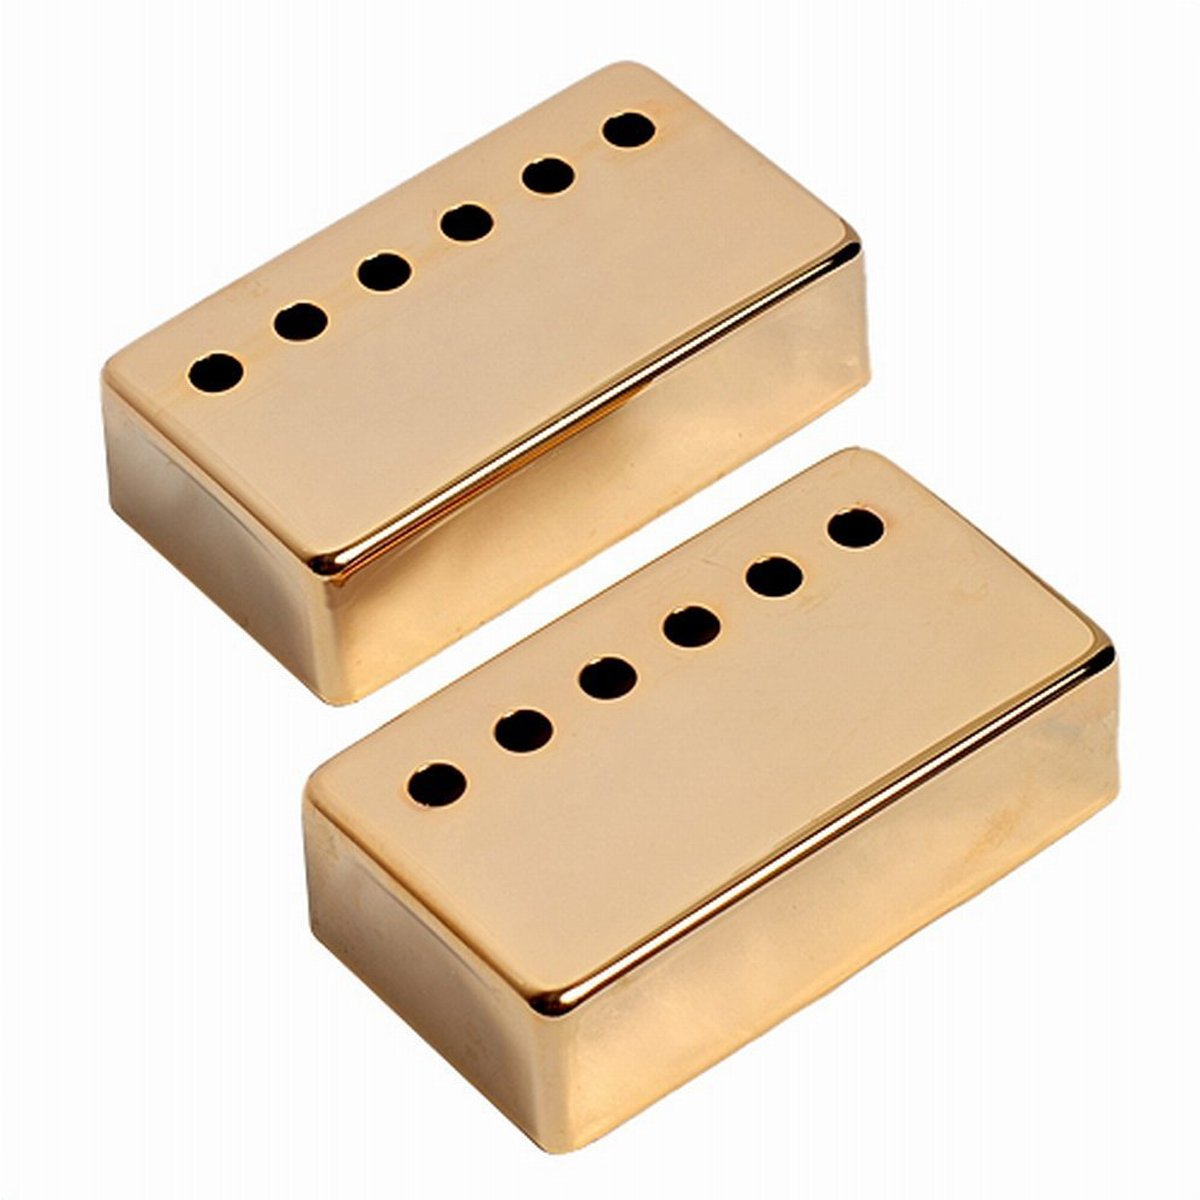 Musiclily 52mm Metal Humbucker Double Coil Pickup Cover for Electric Guitar, Black (Pack of 2) MX0648BK-2